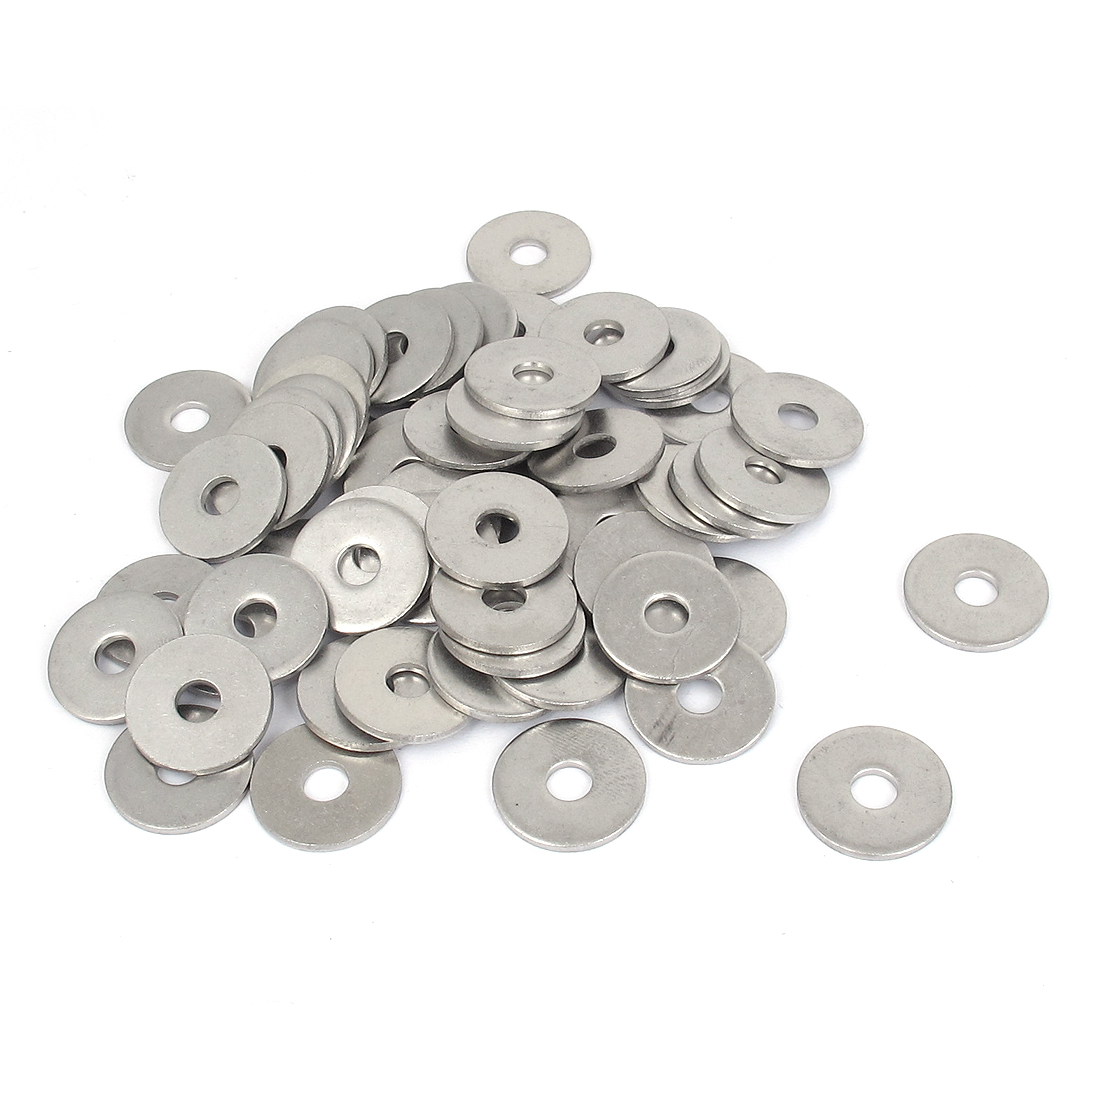 60Pcs M6x22mmx2mm Stainless Steel Metric Round Flat Washer for Bolt Screw